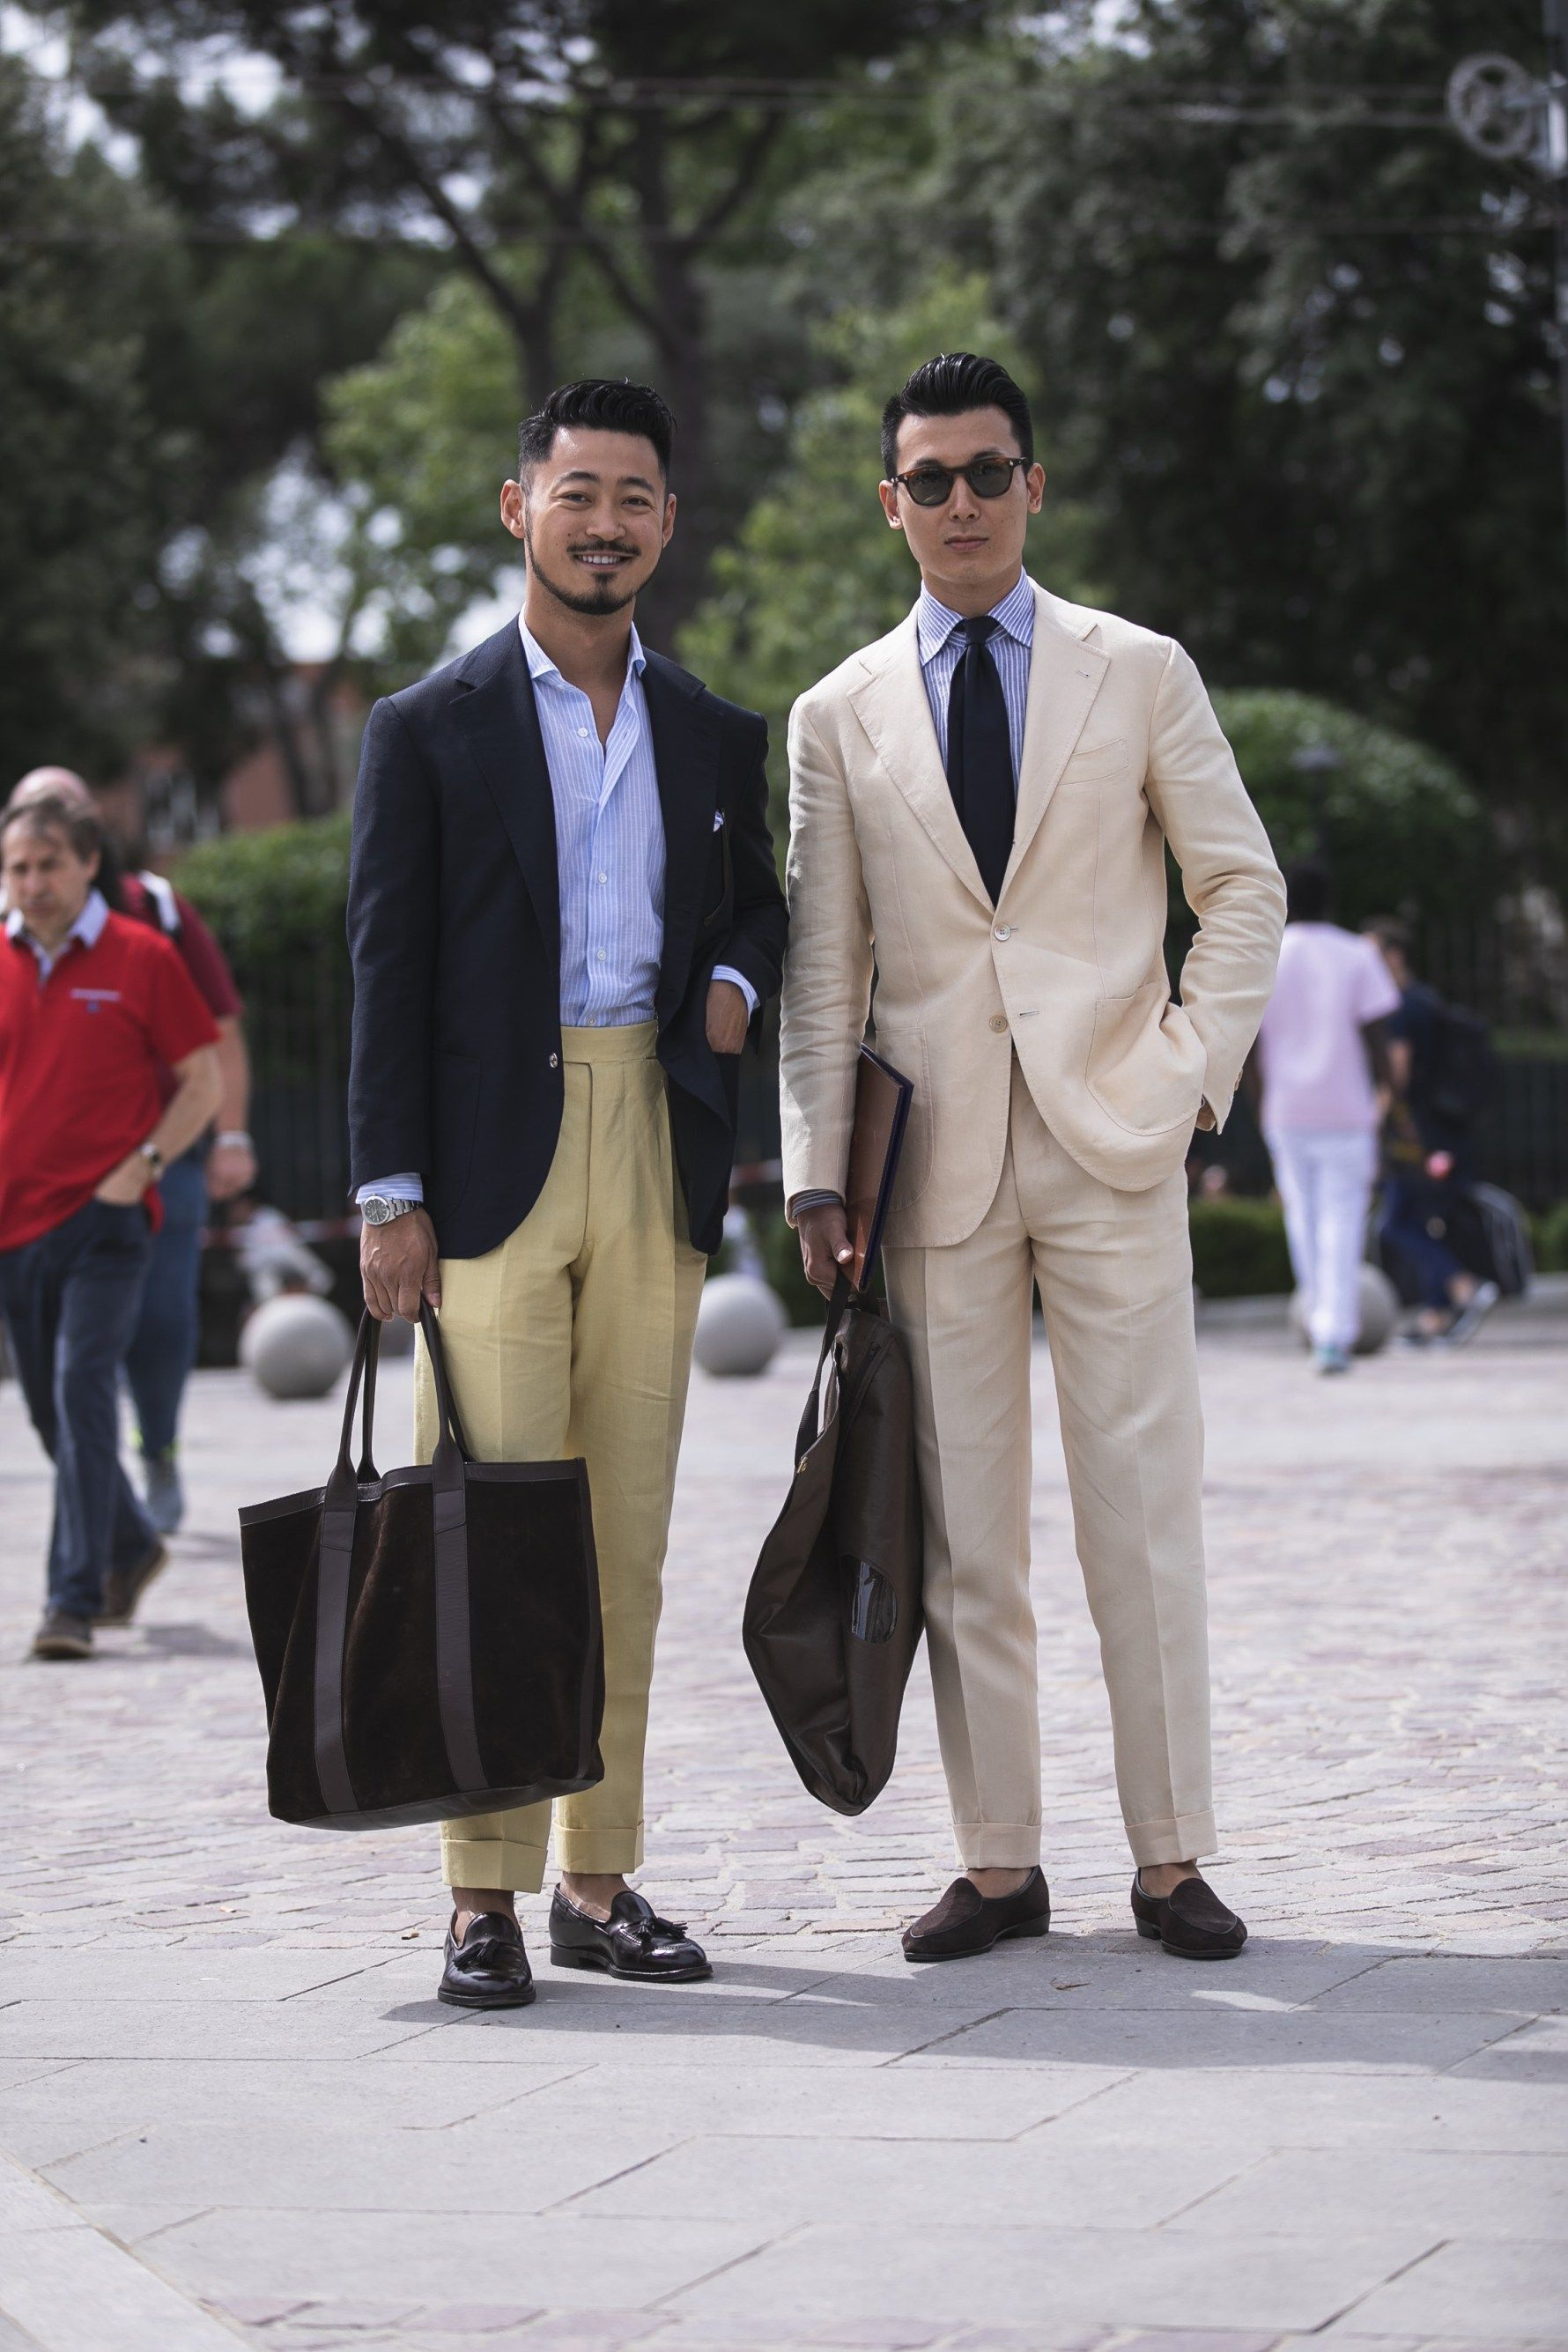 ad6c2bebd pitti uomo 94 streetstyle suit best outfit men trends   new fashion ...